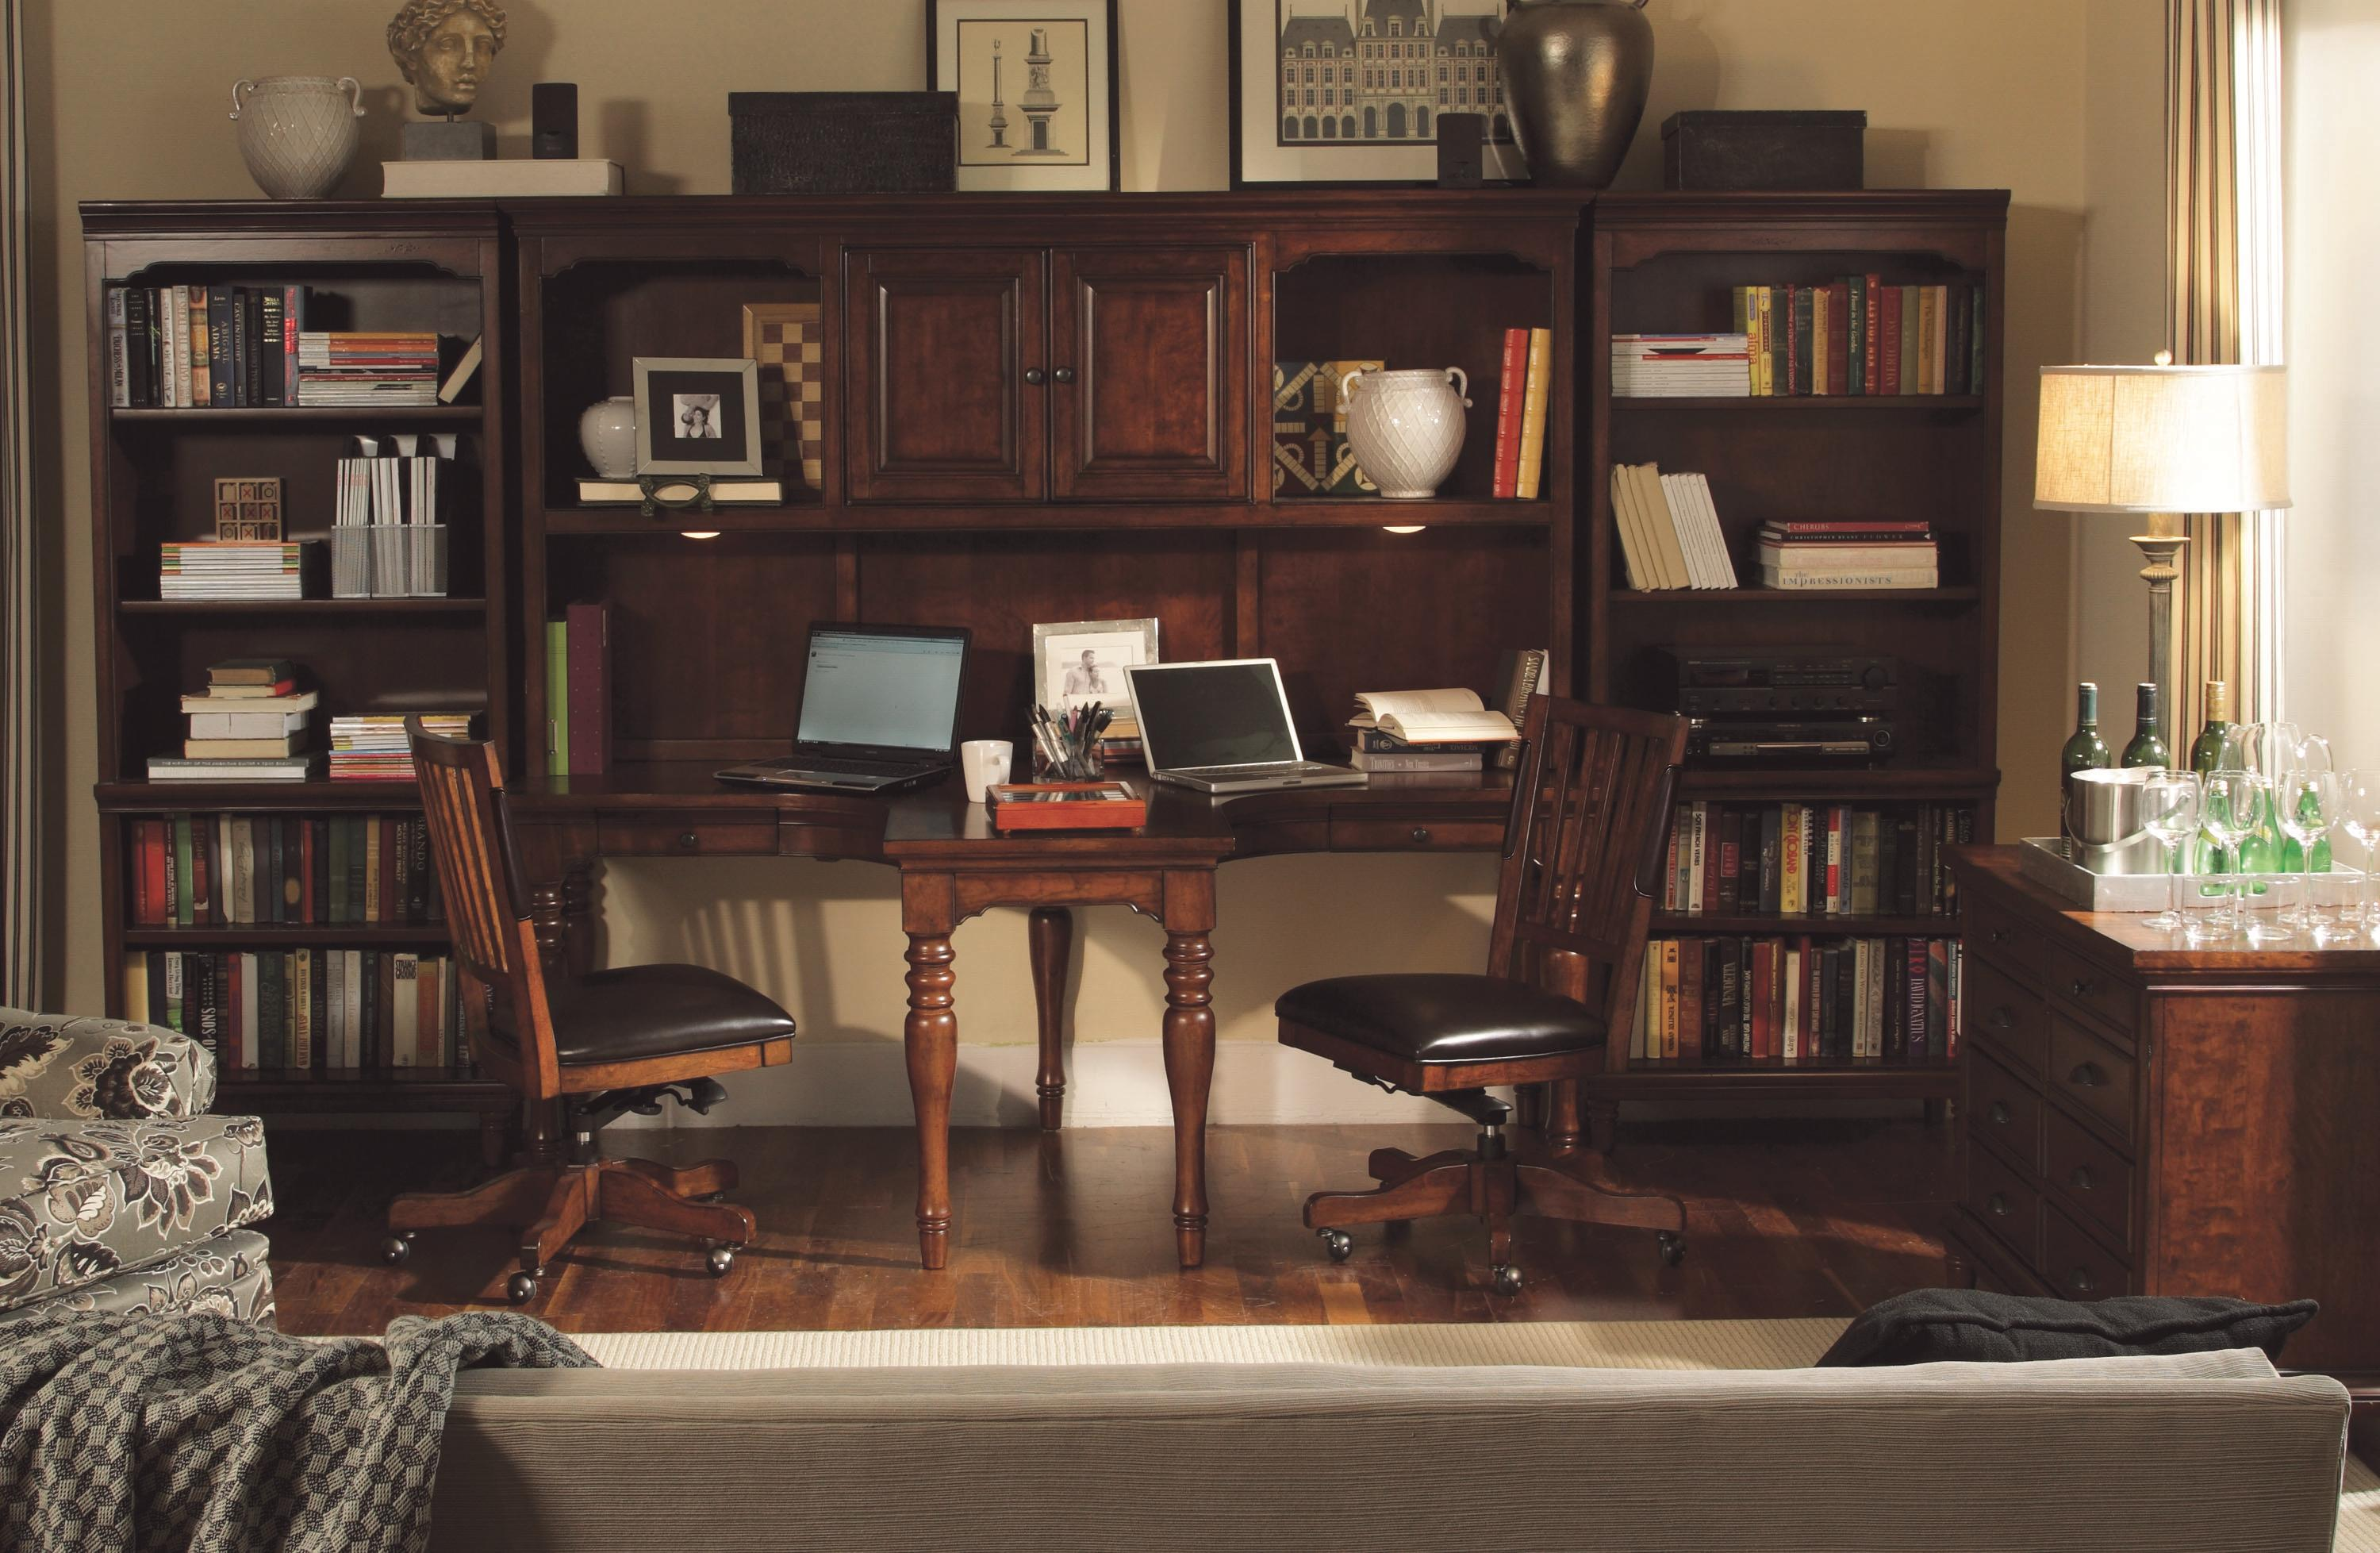 4 Piece Dual T Desk And Dual T Desk Hutch And 2 Open Bookcases   Villager  By Aspenhome   Wilcox Furniture   L Shape Desks Corpus Christi, Kingsville,  ...